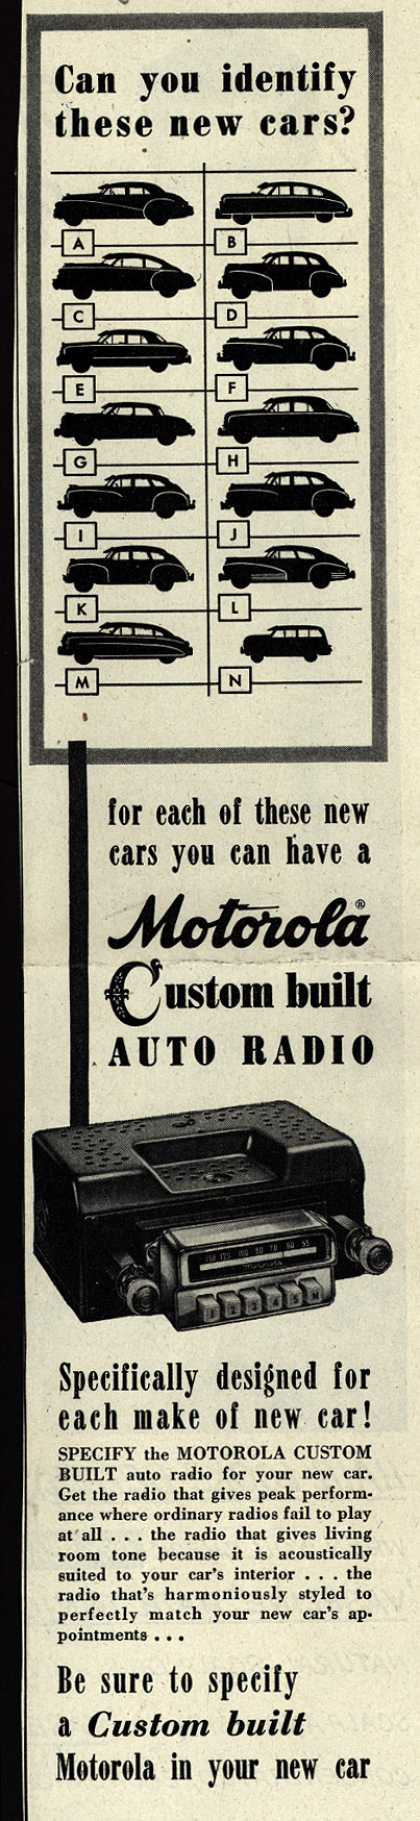 Motorola's Custom Built Auto Radio – Can You Identify These New Cars? (1949)